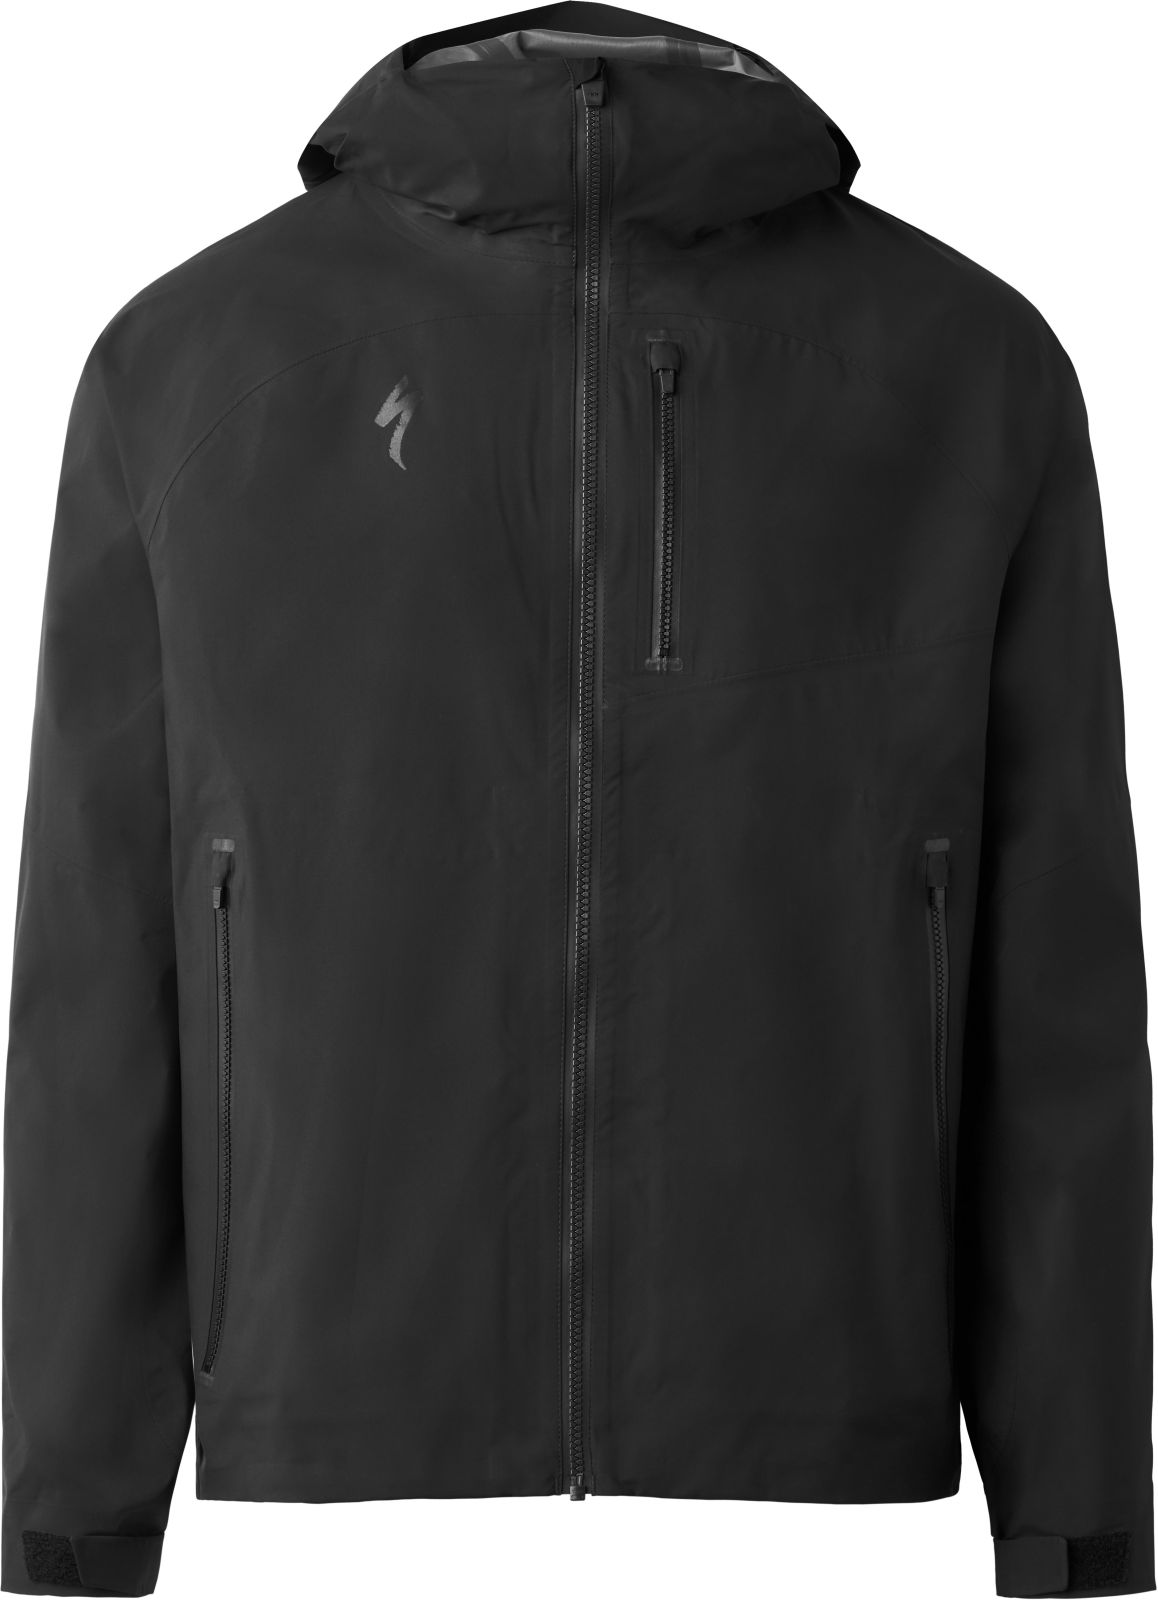 Specialized Deflect H2O Mtn Jacket - dark carbon XXL